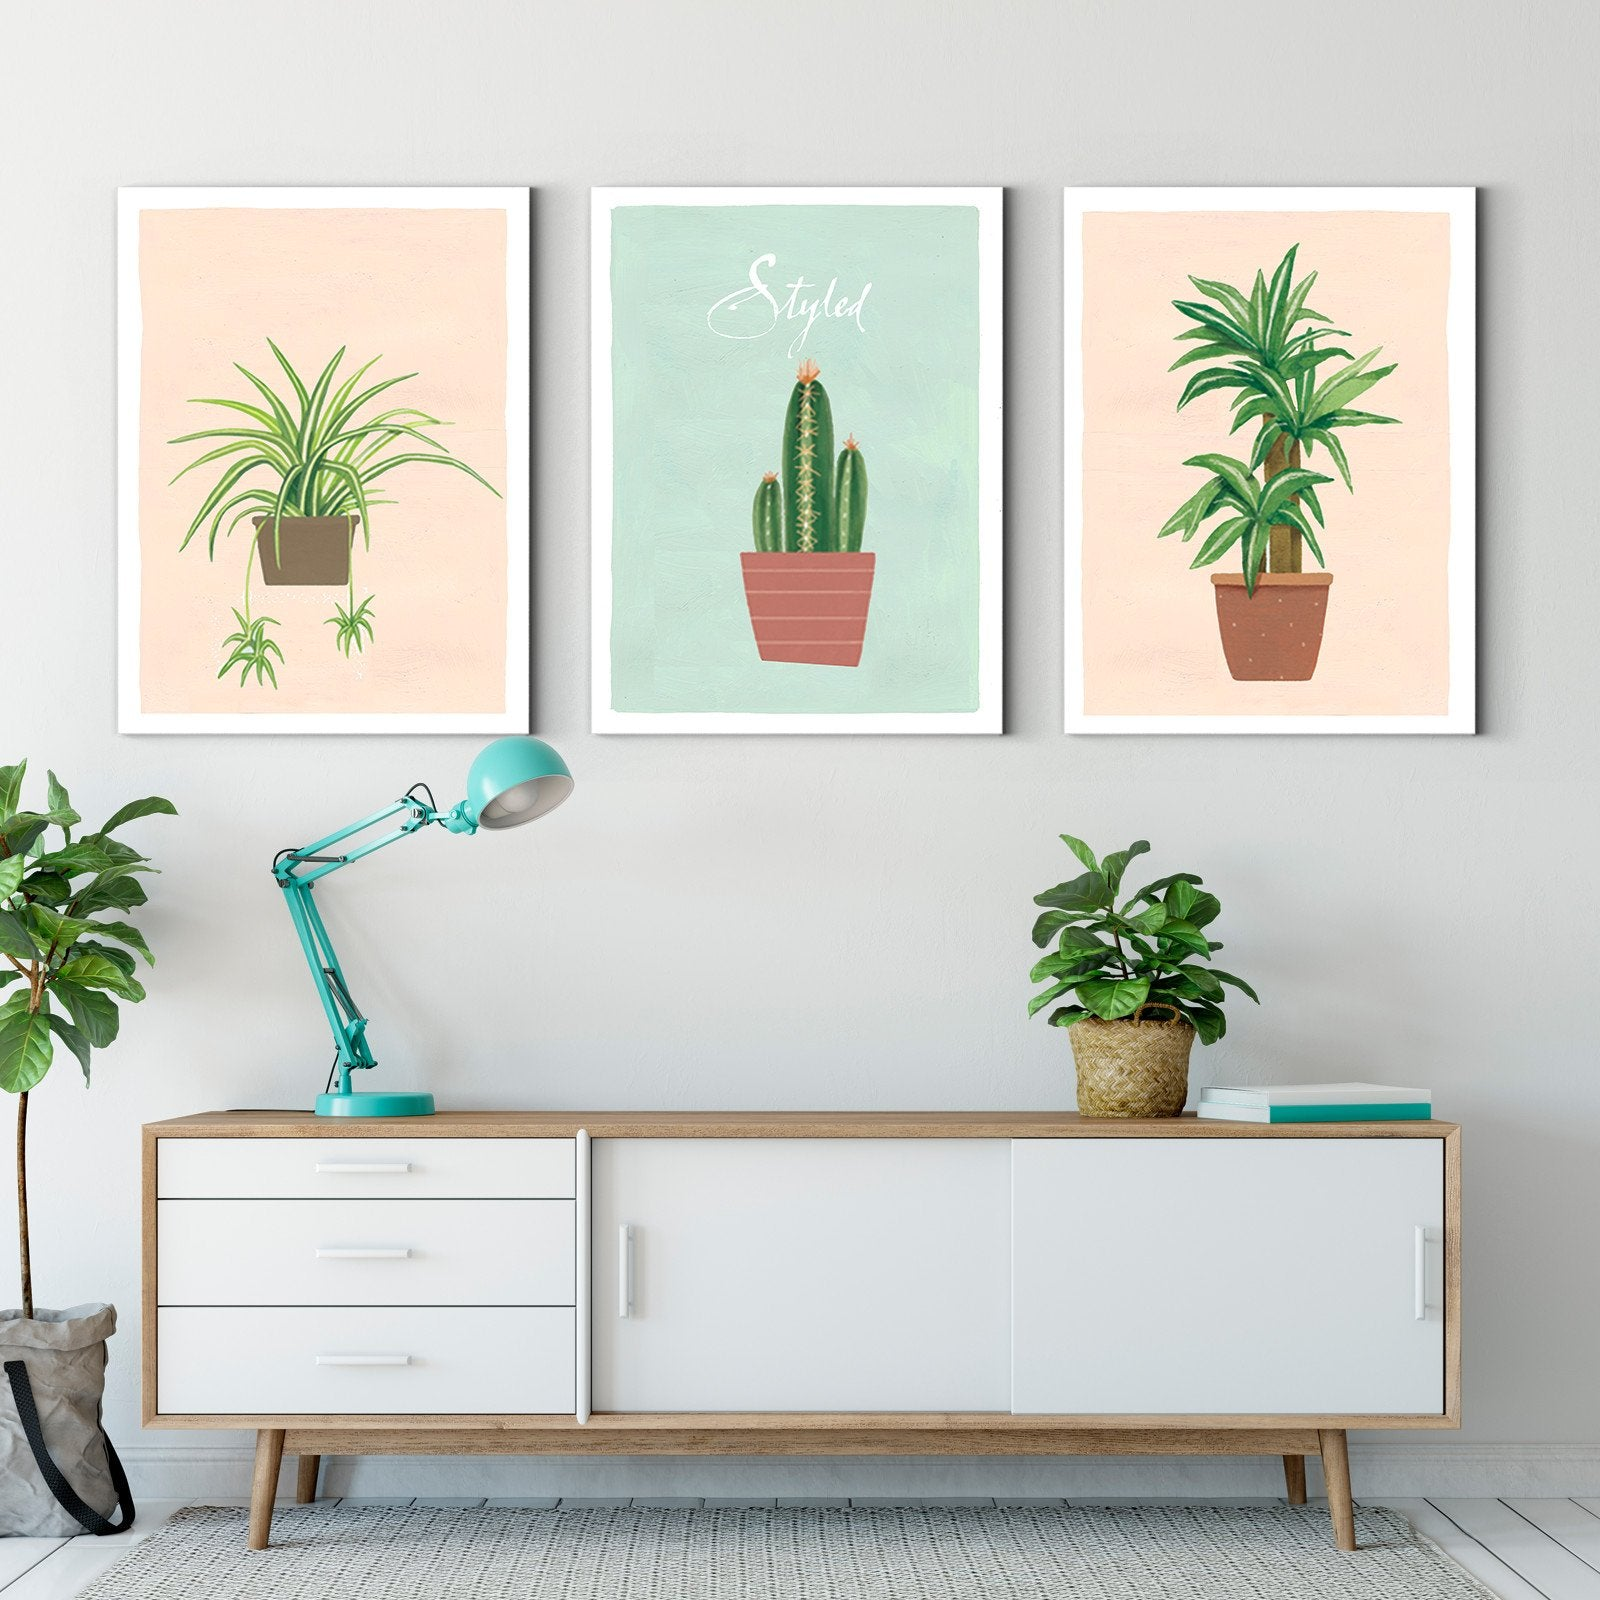 Nordic style small potted plants - plant decorative painting - living room-Multi Panel Wall Art060